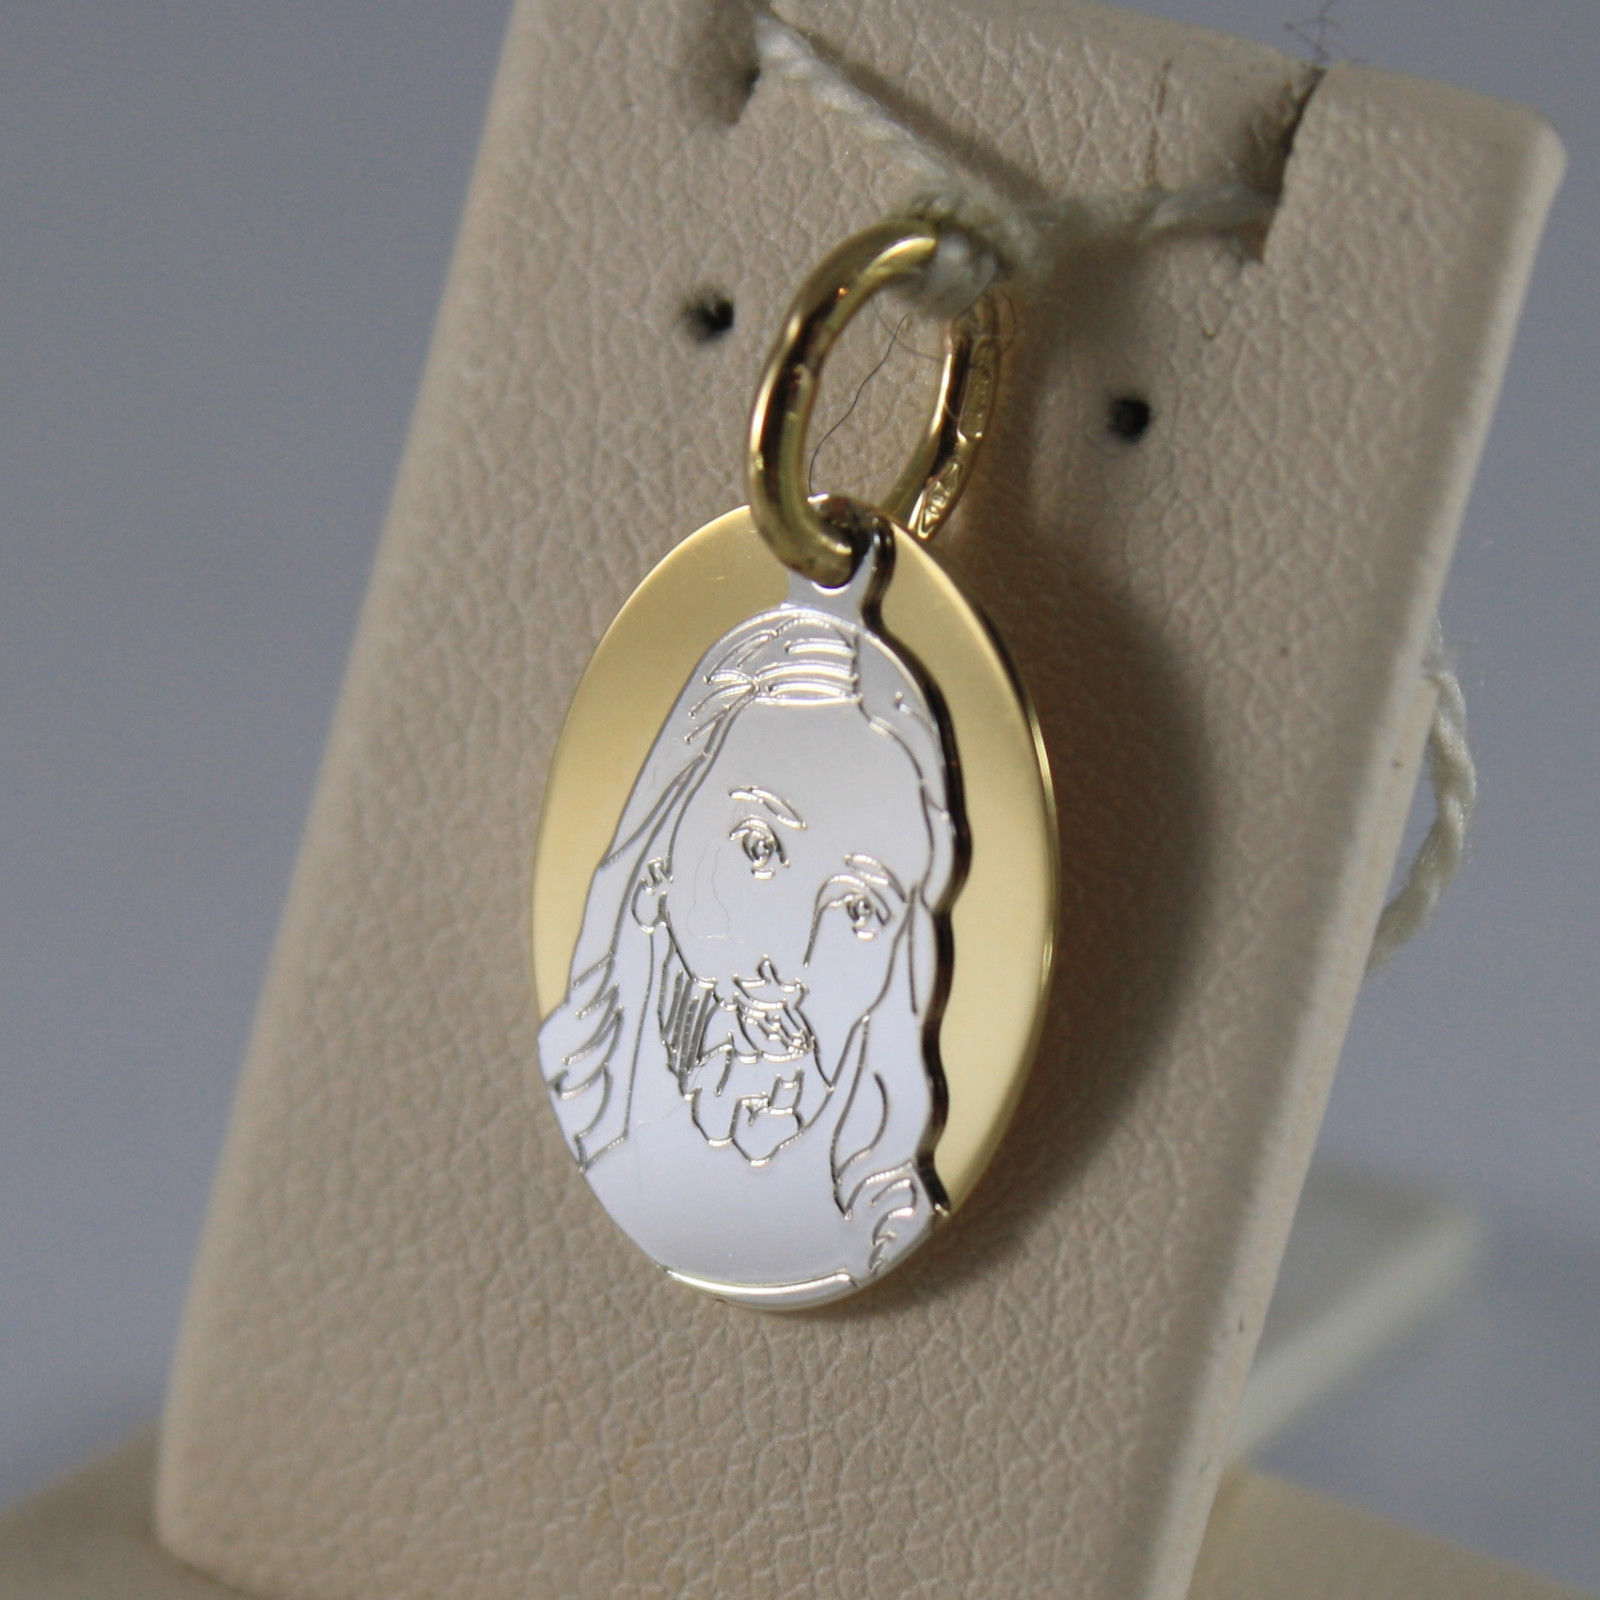 SOLID 18K YELLOW AND WHITE GOLD, OVAL MEDAL PENDANT,WITH JESUS, LENGTH 0,87 IN